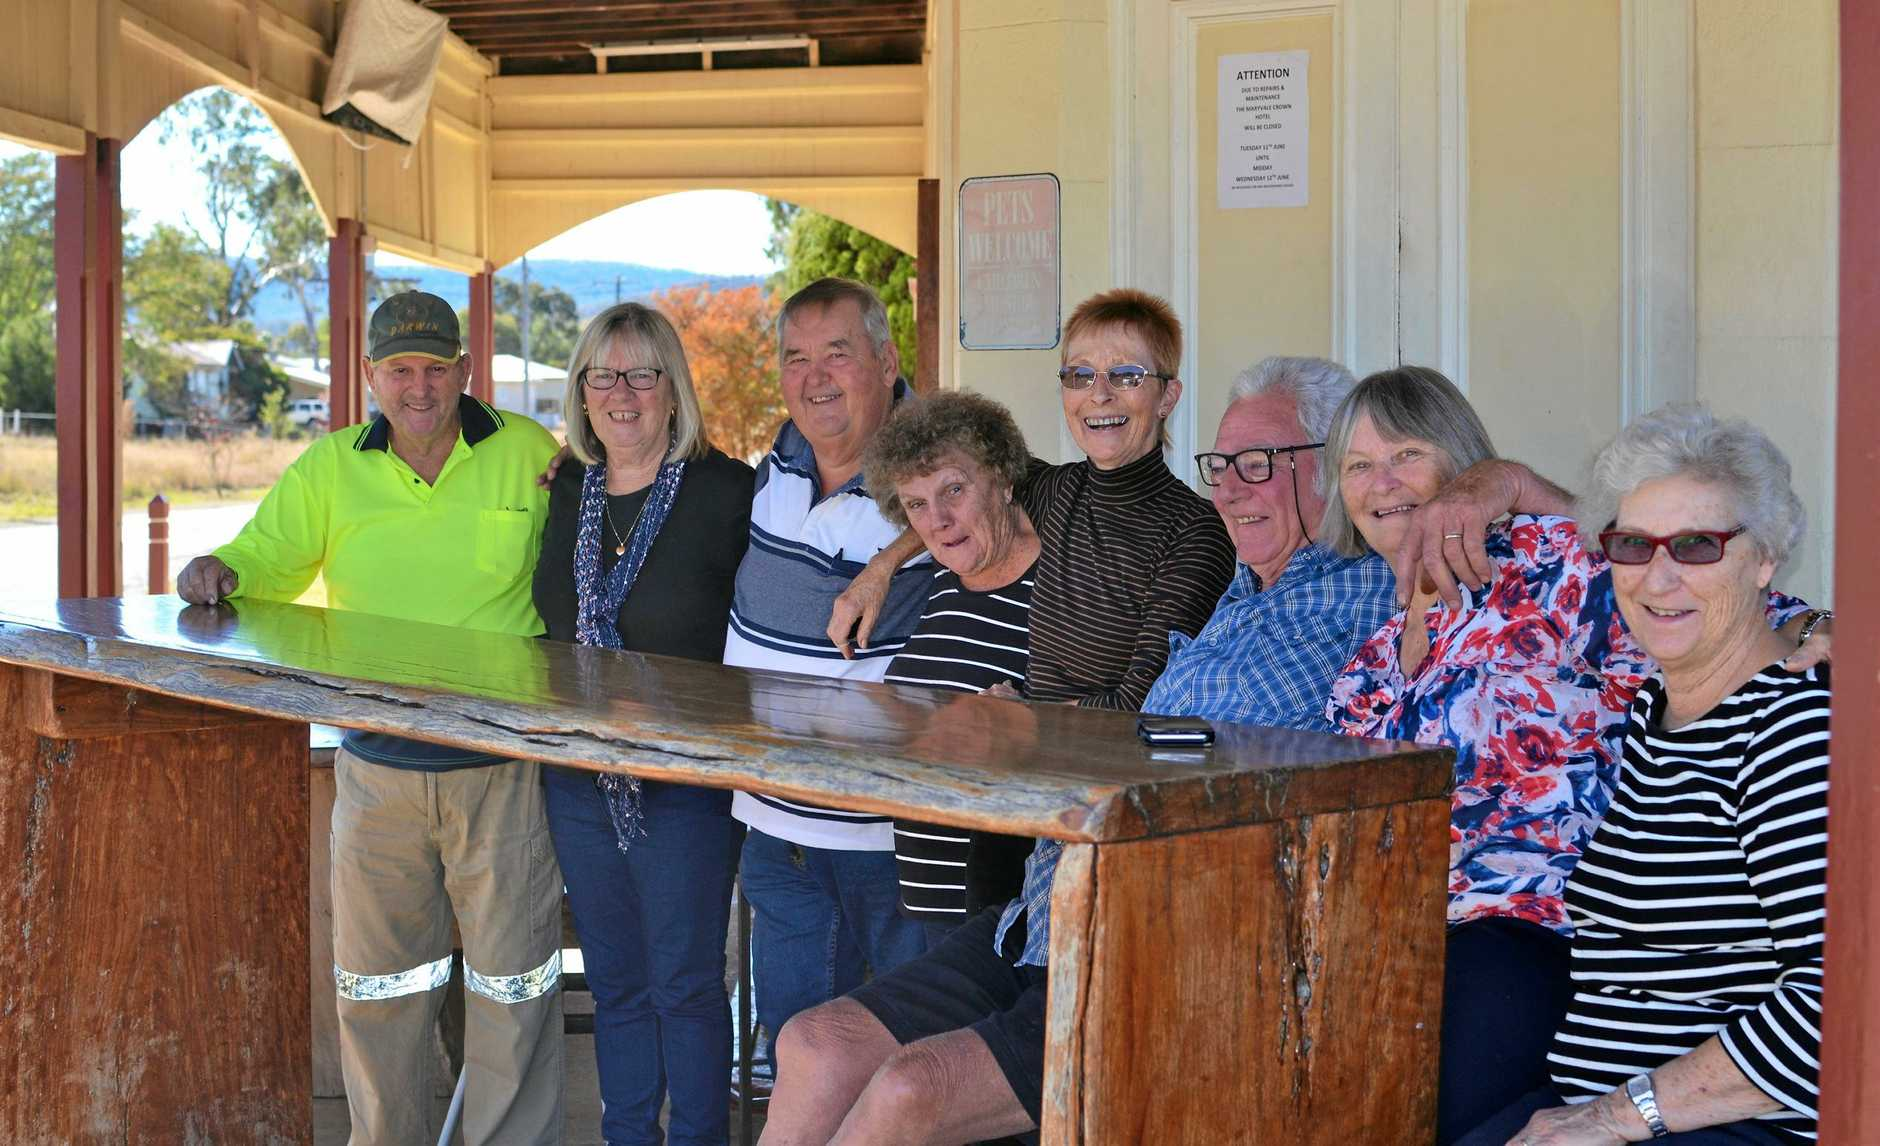 IT'S FINALLY HAPPENING: Members of the Maryvale Progress Association (from left) Lawrence Curnow, Colleen Cowley, Bob Cullen, Lyn Curnow, Barbara Dukeson, Bob Reade, Marj McKenzie and Laura Wozencroft are excited to see their ideas come to fruition.